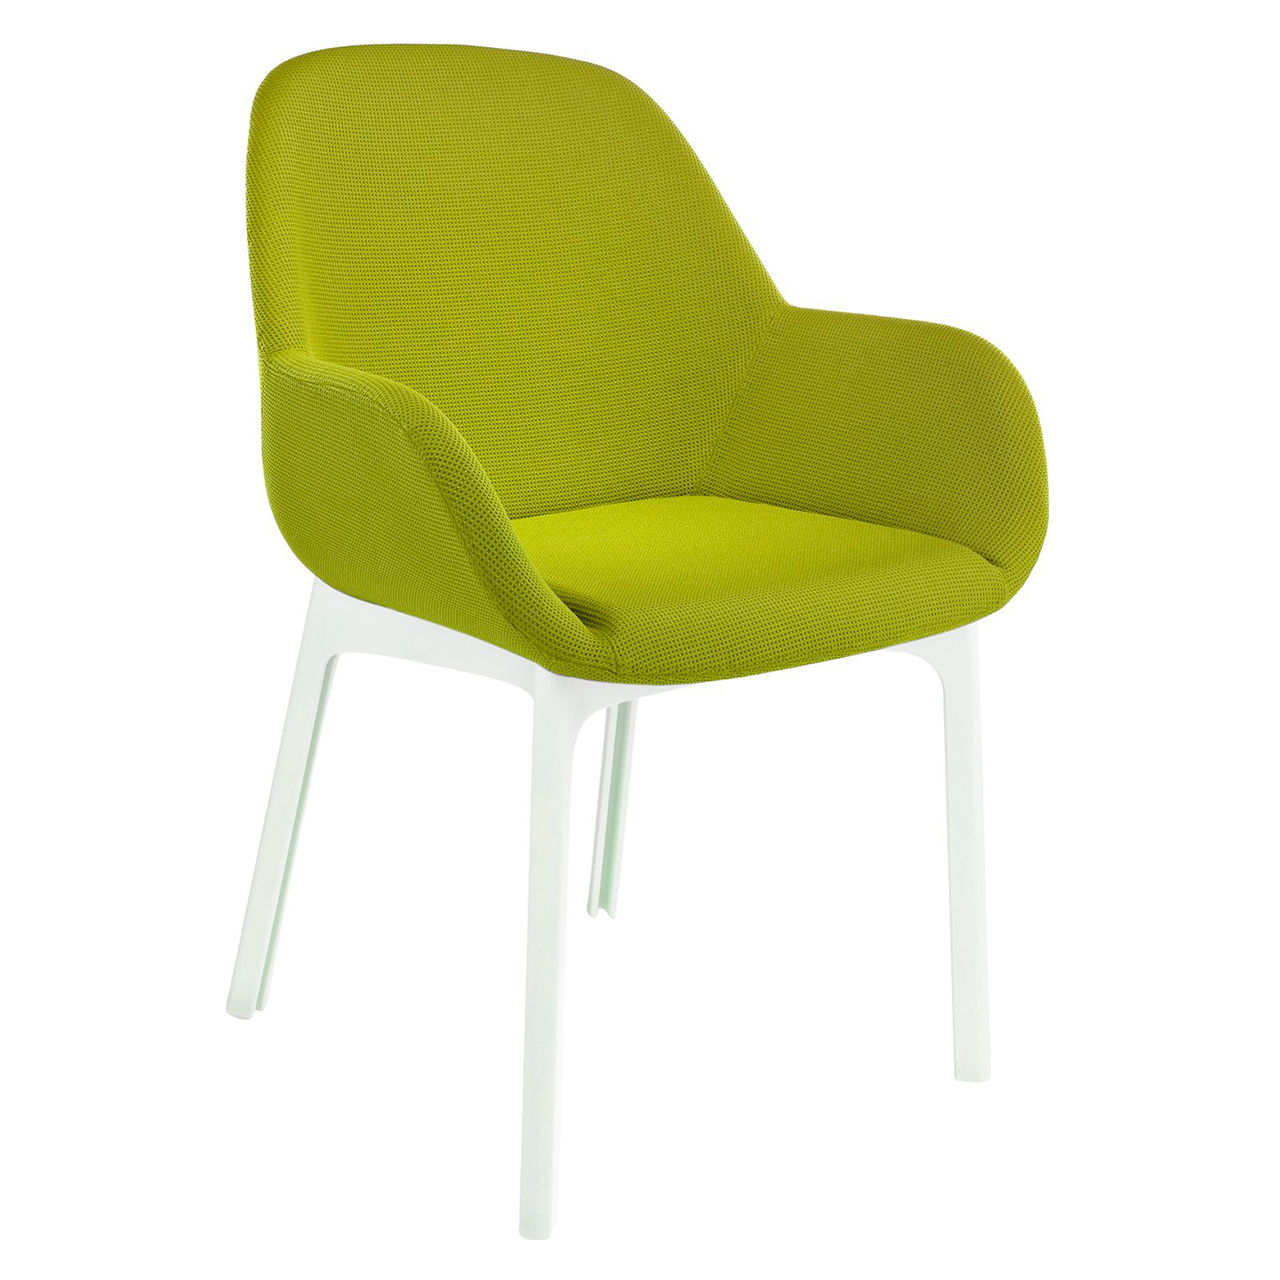 Clap Solid Chair in Trevira Green by Kartell